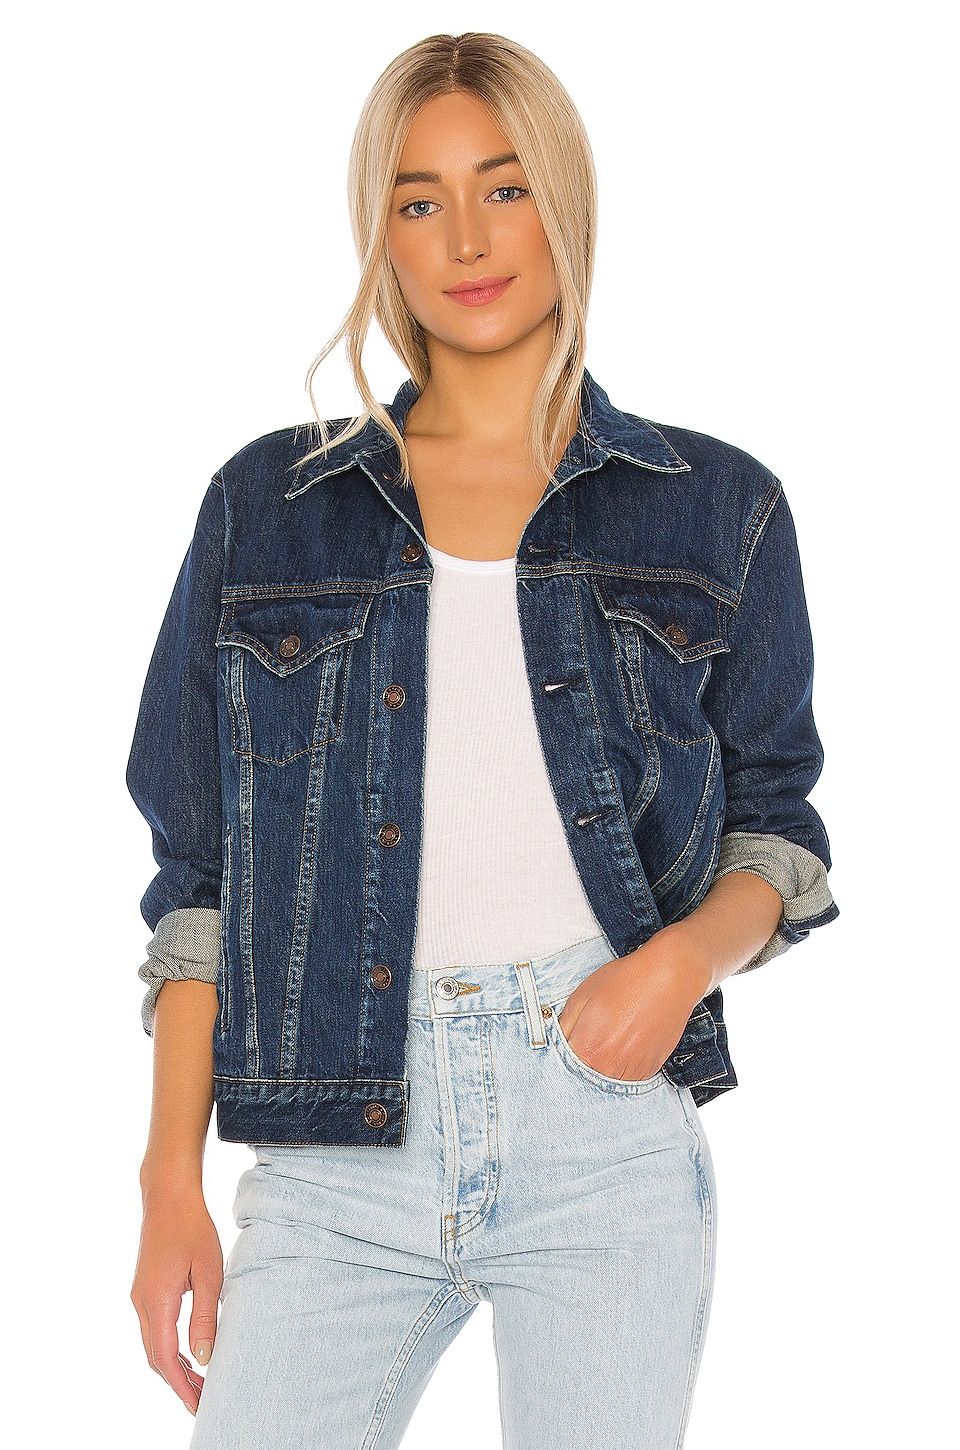 RE/DONE 90s Oversized Trucker Jacket in Dingy Indigo